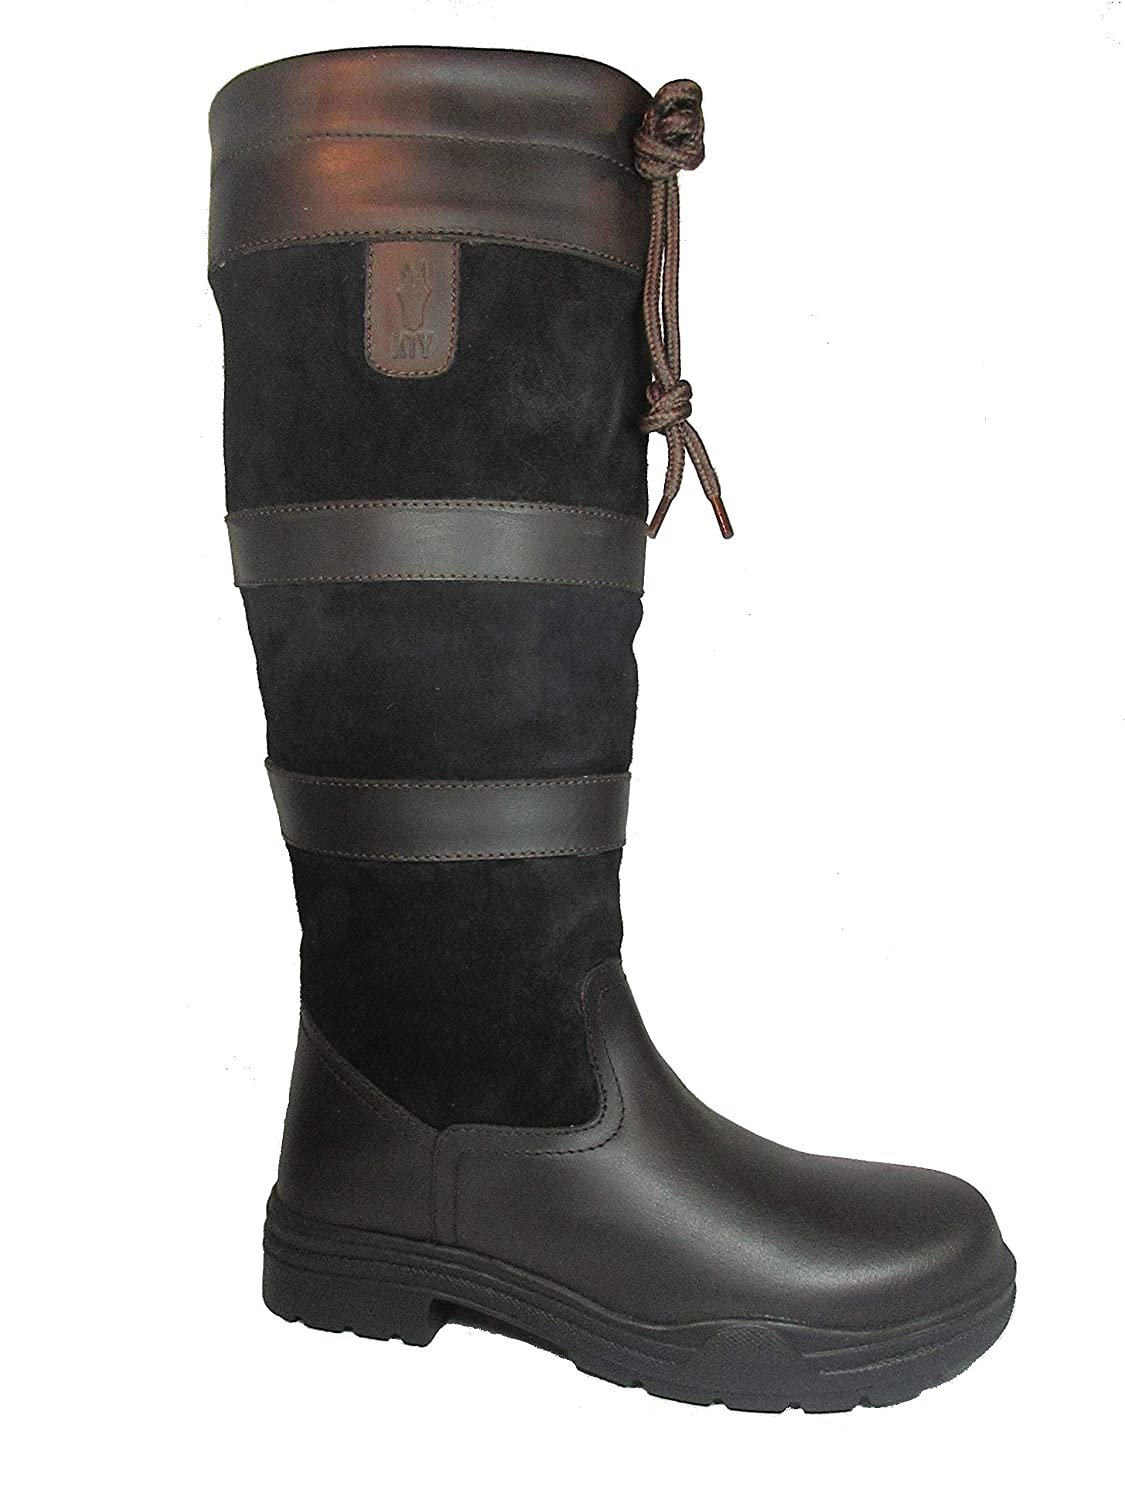 225882b0d90 KTY Long Leather Country Boots - Adults Equestrian Ladies Womens Riding  Walking Outdoor Yard Brown/Brown and Black/Brown UK Size 3-10 Standard +  Wide